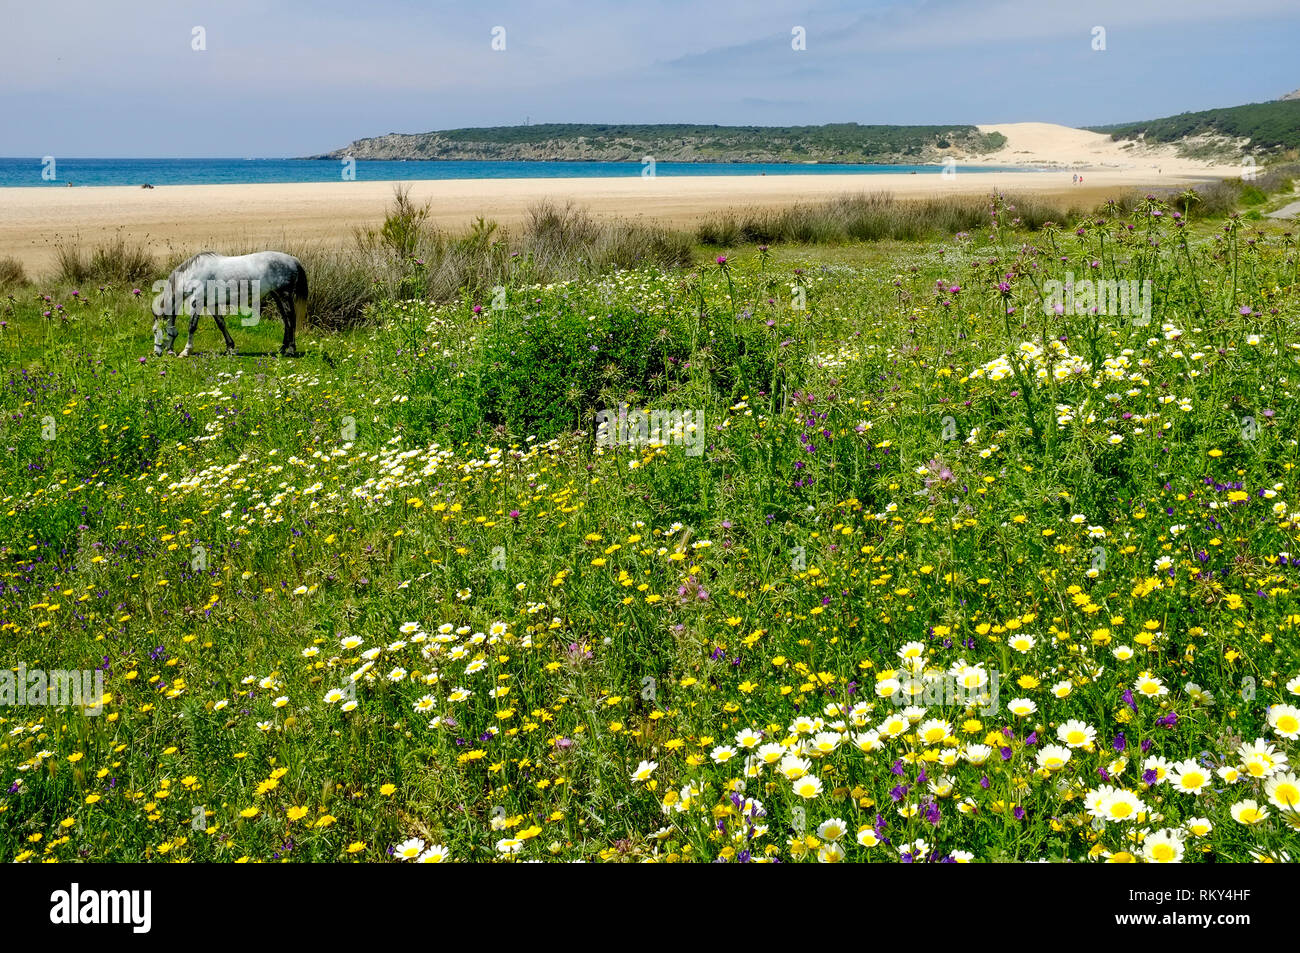 A grazing horse in a wild flower meadow next to the deserted beach and sand dunes at Bolonia Bay, Costa de la Luz, Andalucia, Spain - Stock Image